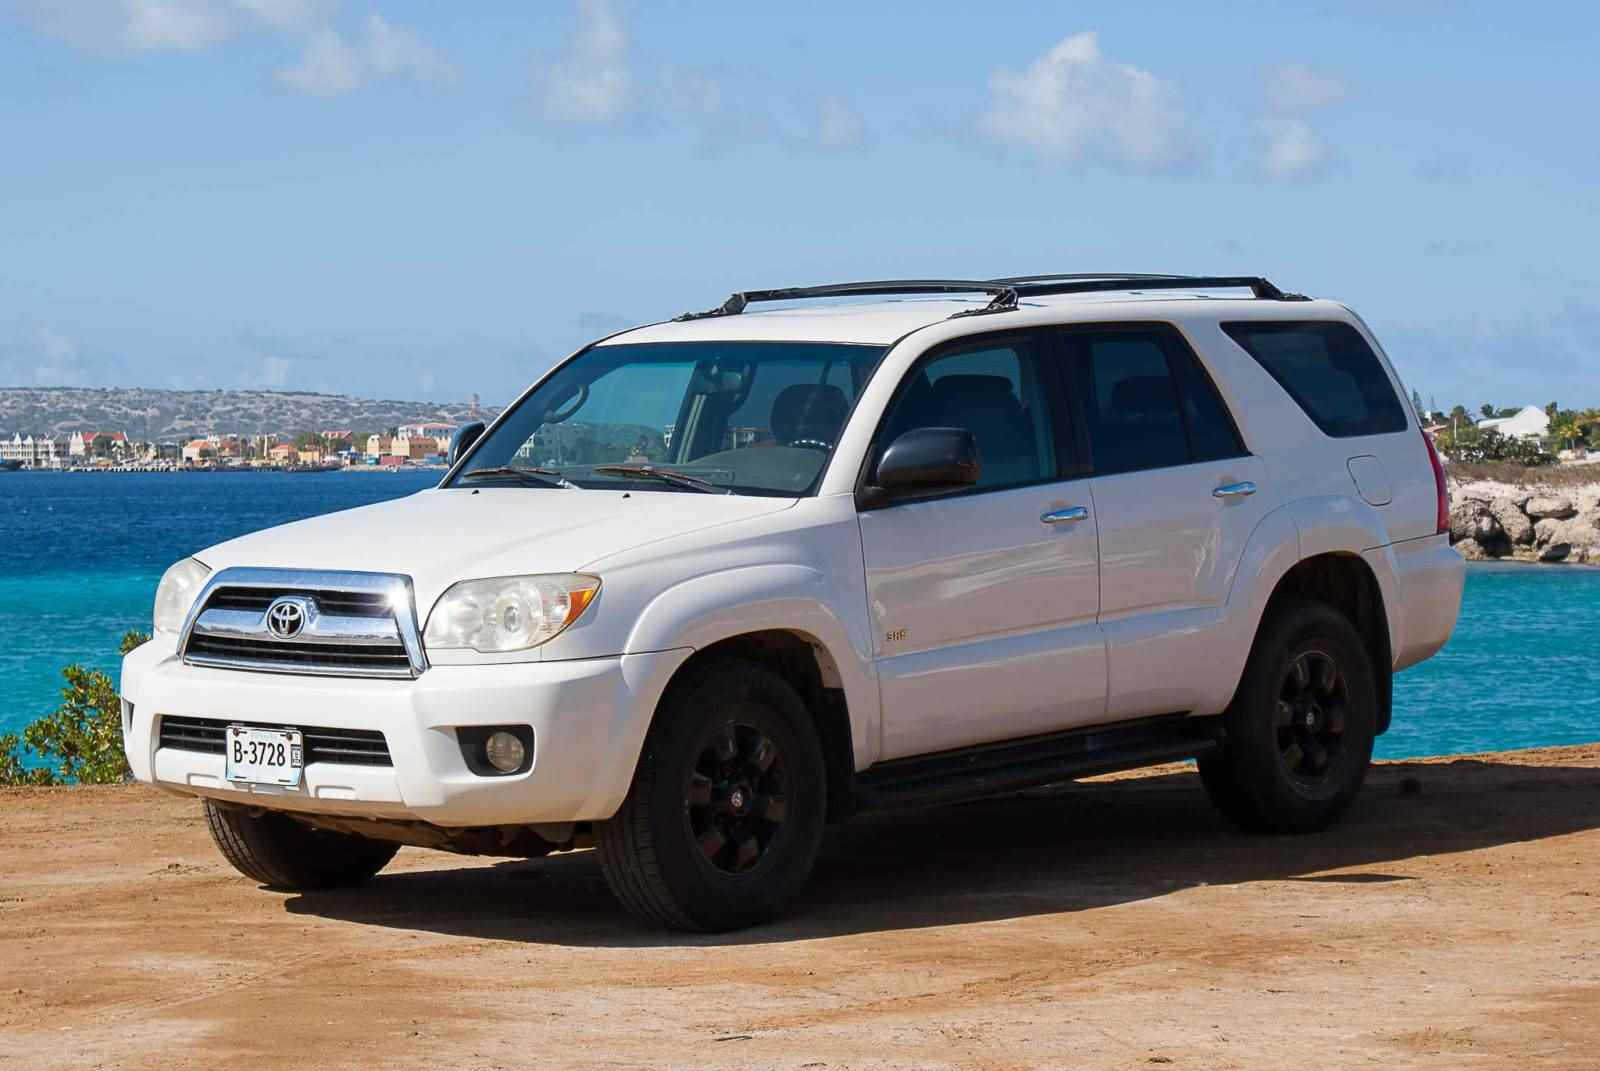 Tropical Car rental Bonaire - Toyota 4 runner auto huren